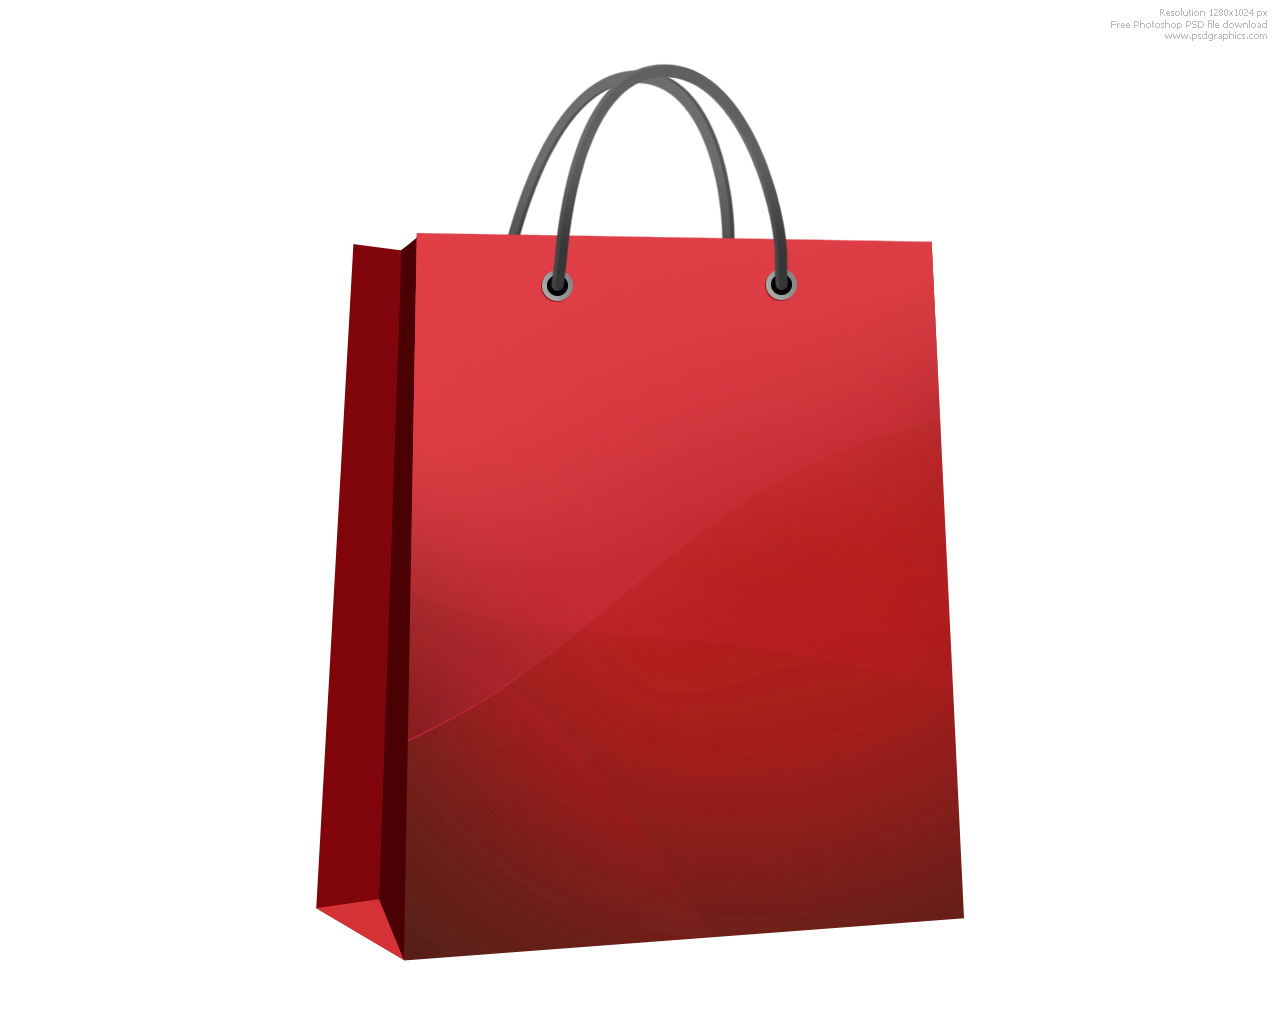 1280x1024 Shopping Bags Shopping Bag Clipart Free Images 5